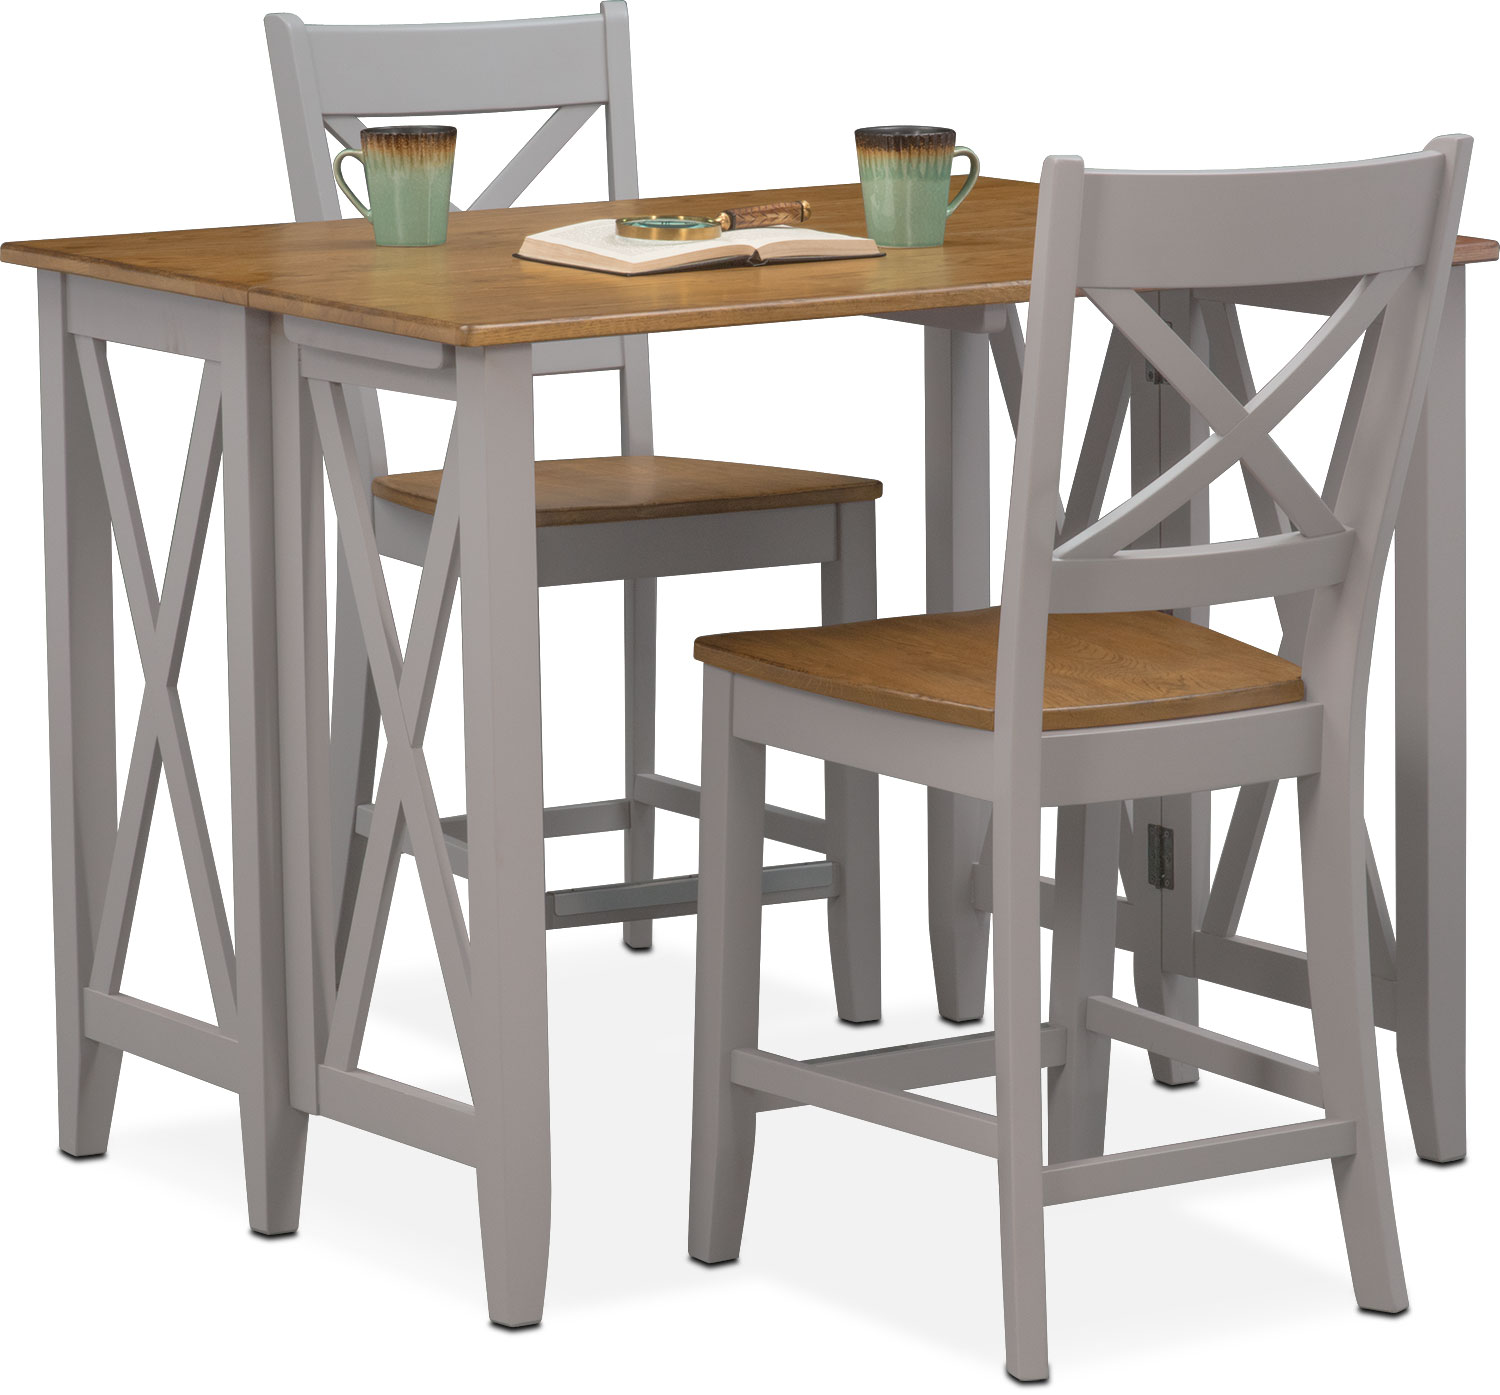 Nantucket Breakfast Bar and 2 Counter-Height Side Chairs - Oak and